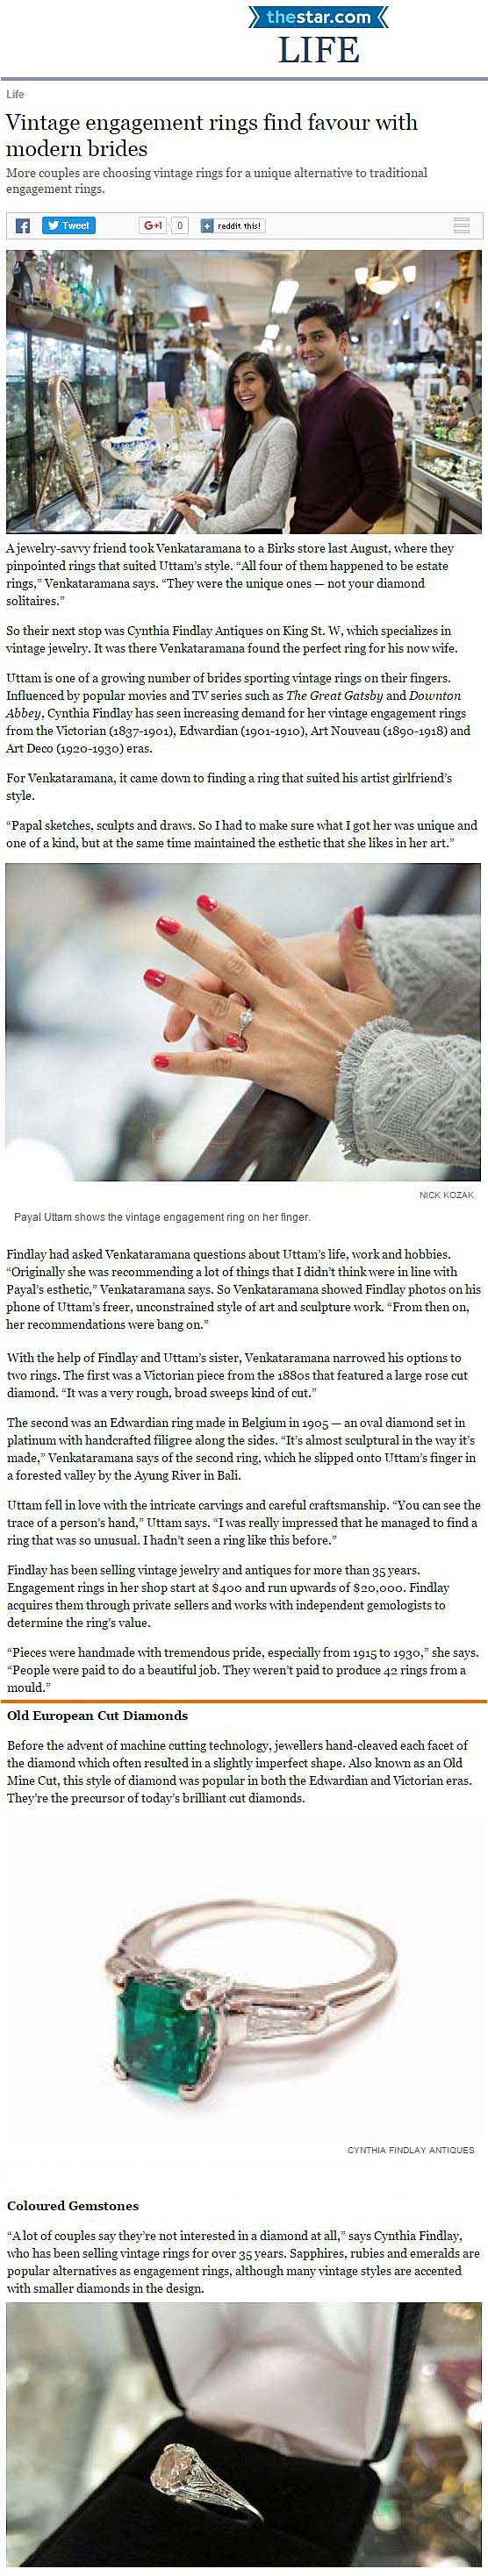 Toronto-Star-Cynthia-Findlay-Antiques-Vintage-Engagement-Rings-Find-Favour-With-Modern-Brides